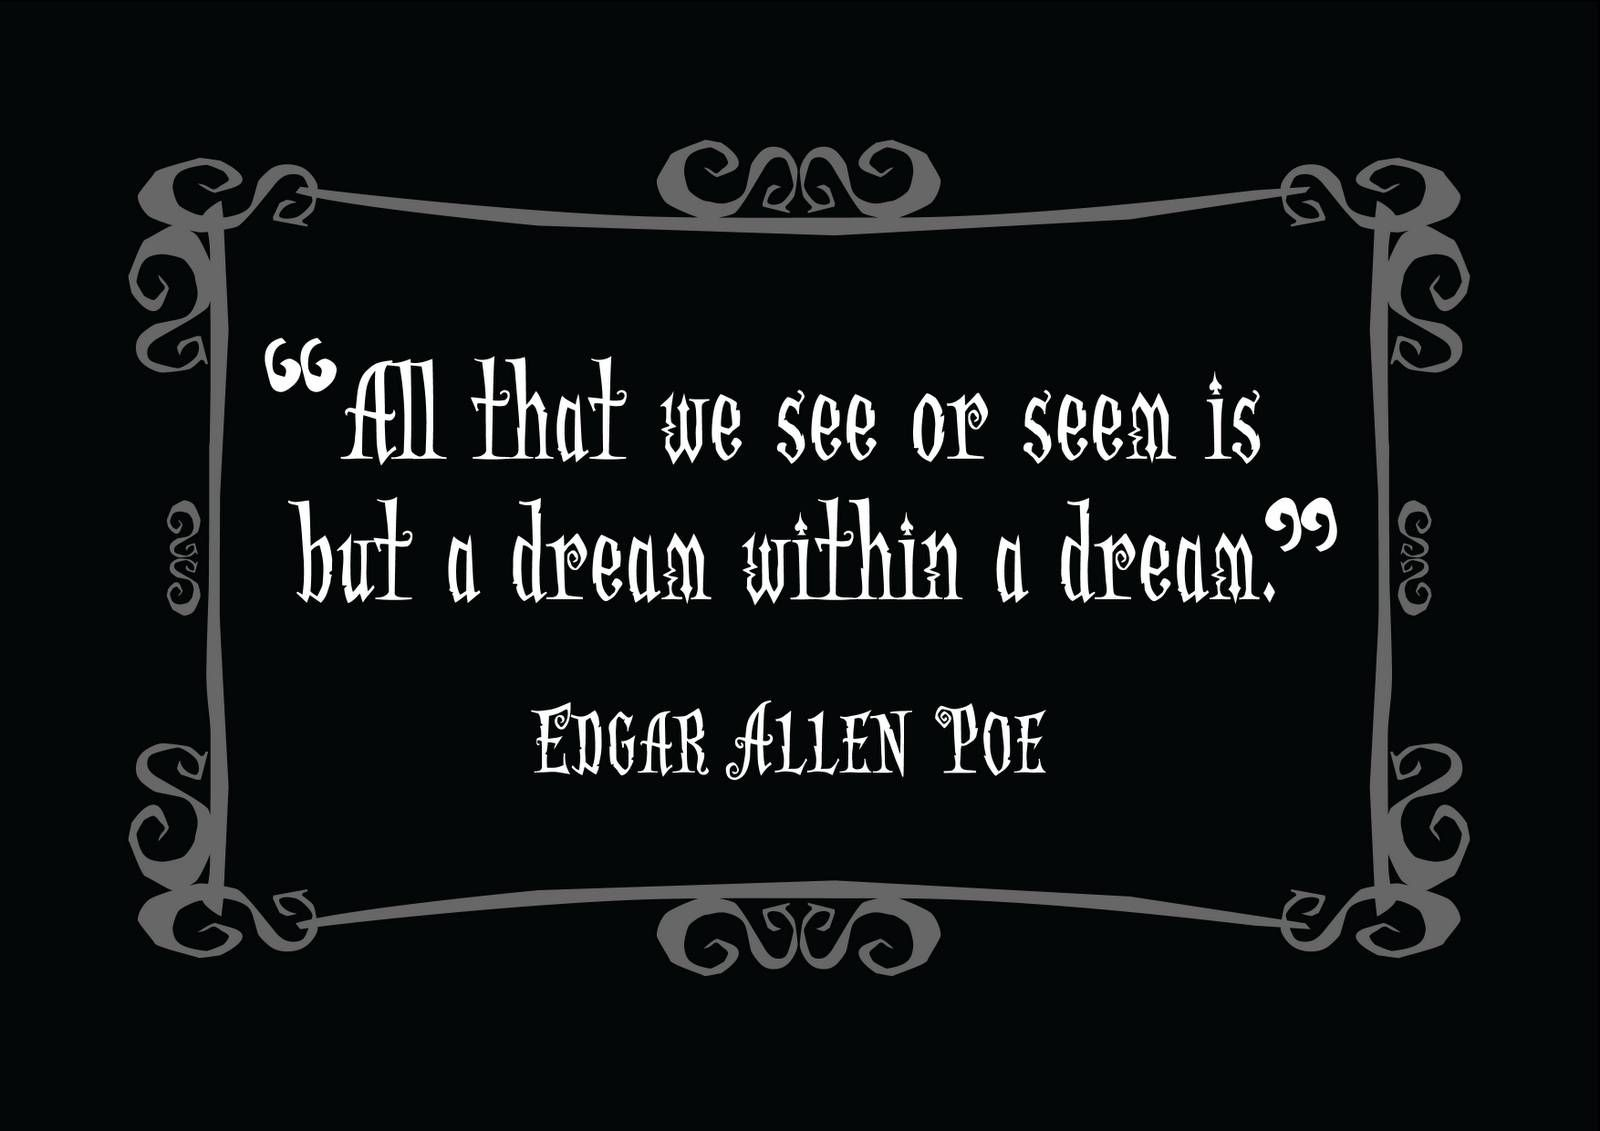 Edgar Allan Poe Life Quotes Fascinating Edgar Allan Poe Quotes On Music  Google Search  Edgar Allan Poe